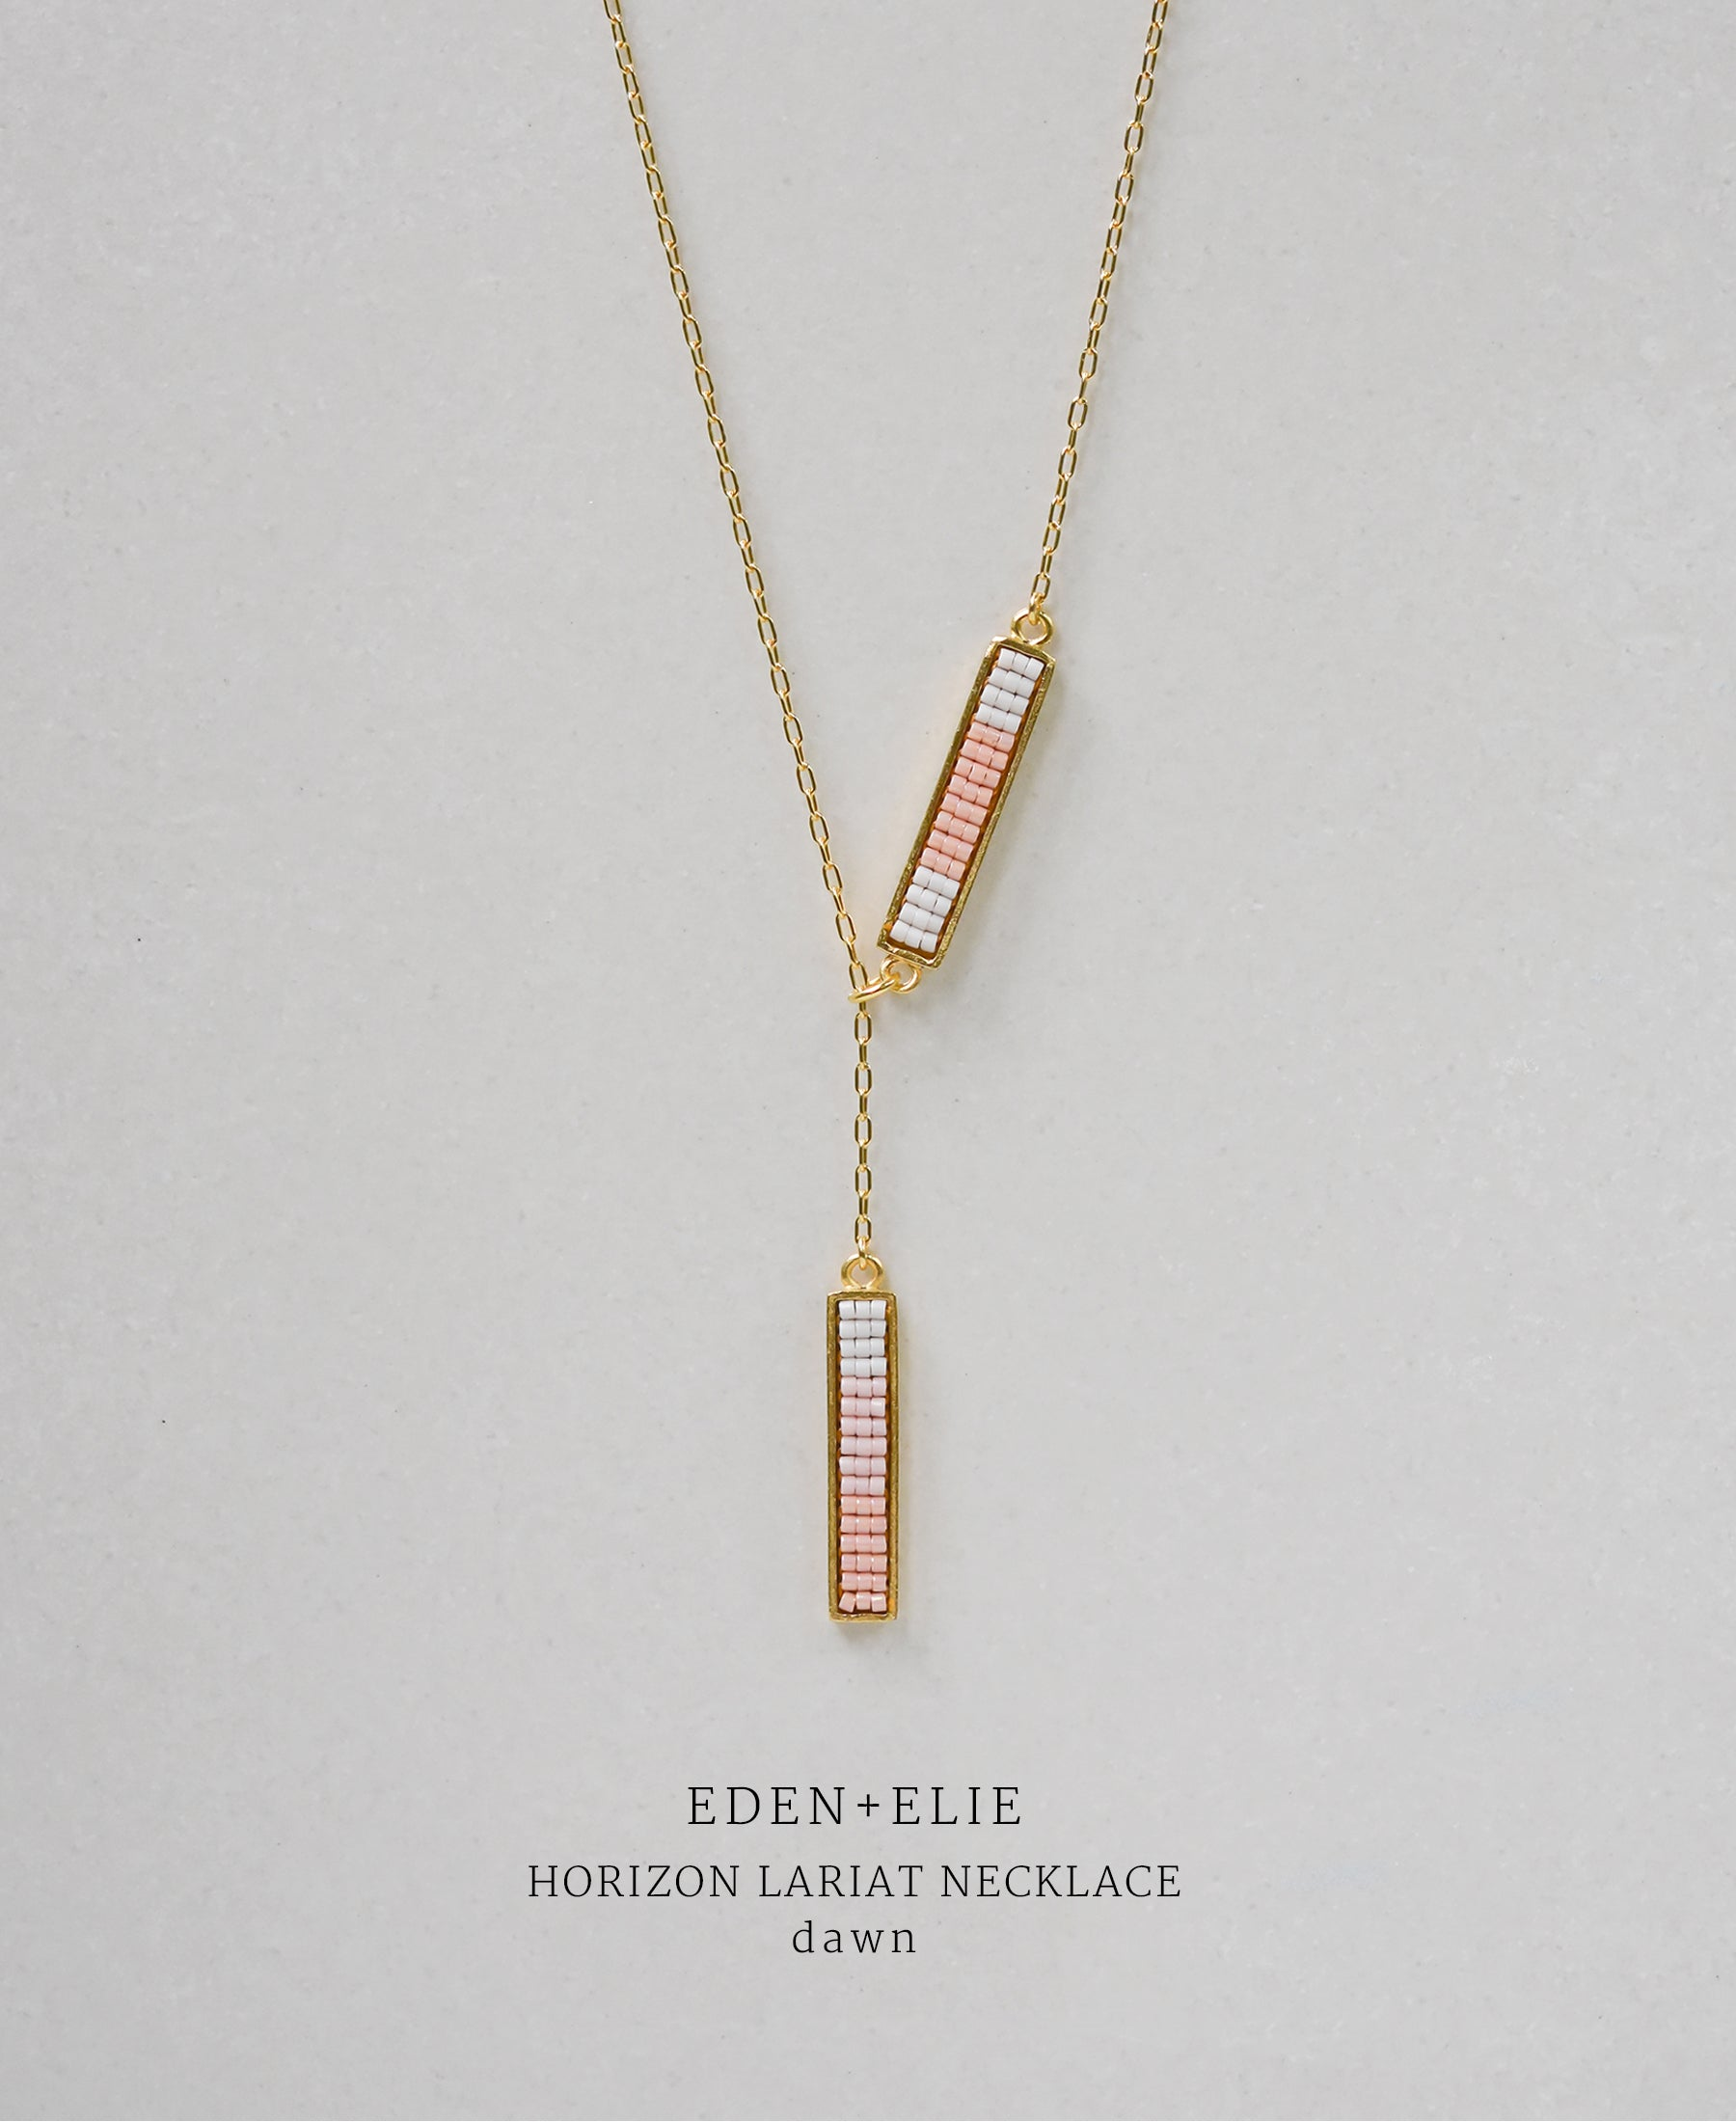 EDEN + ELIE Horizon Lariat necklace - dawn pink